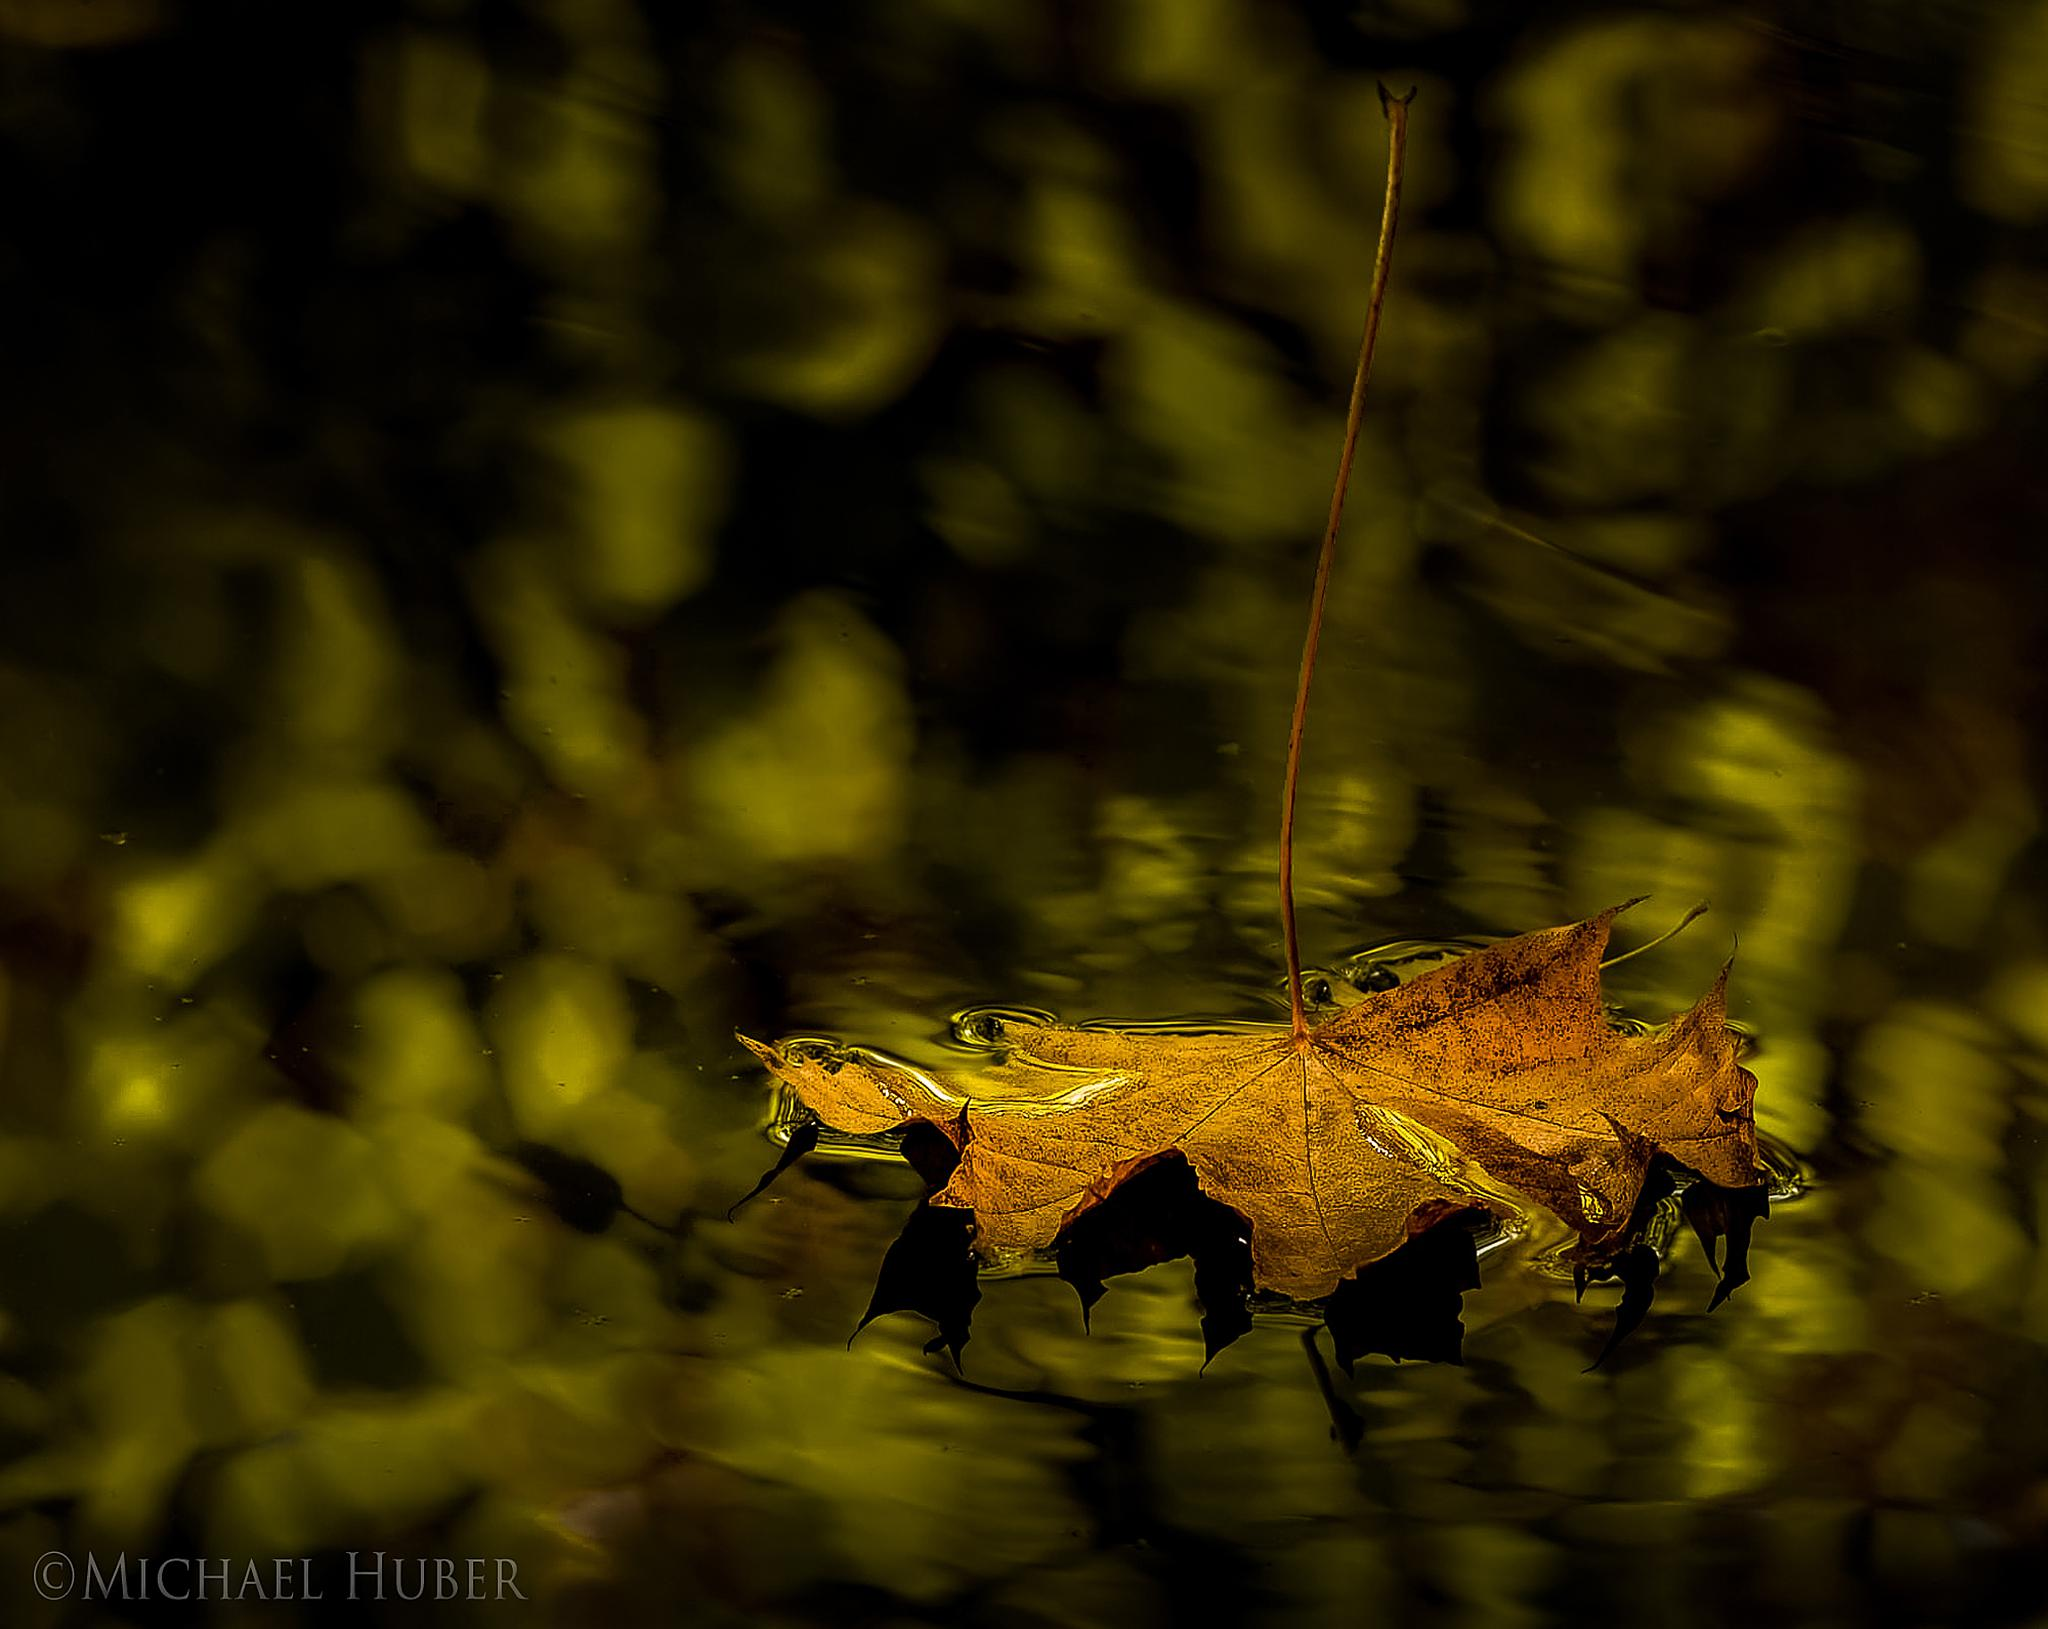 The Travelling Leaf by Michael Huber